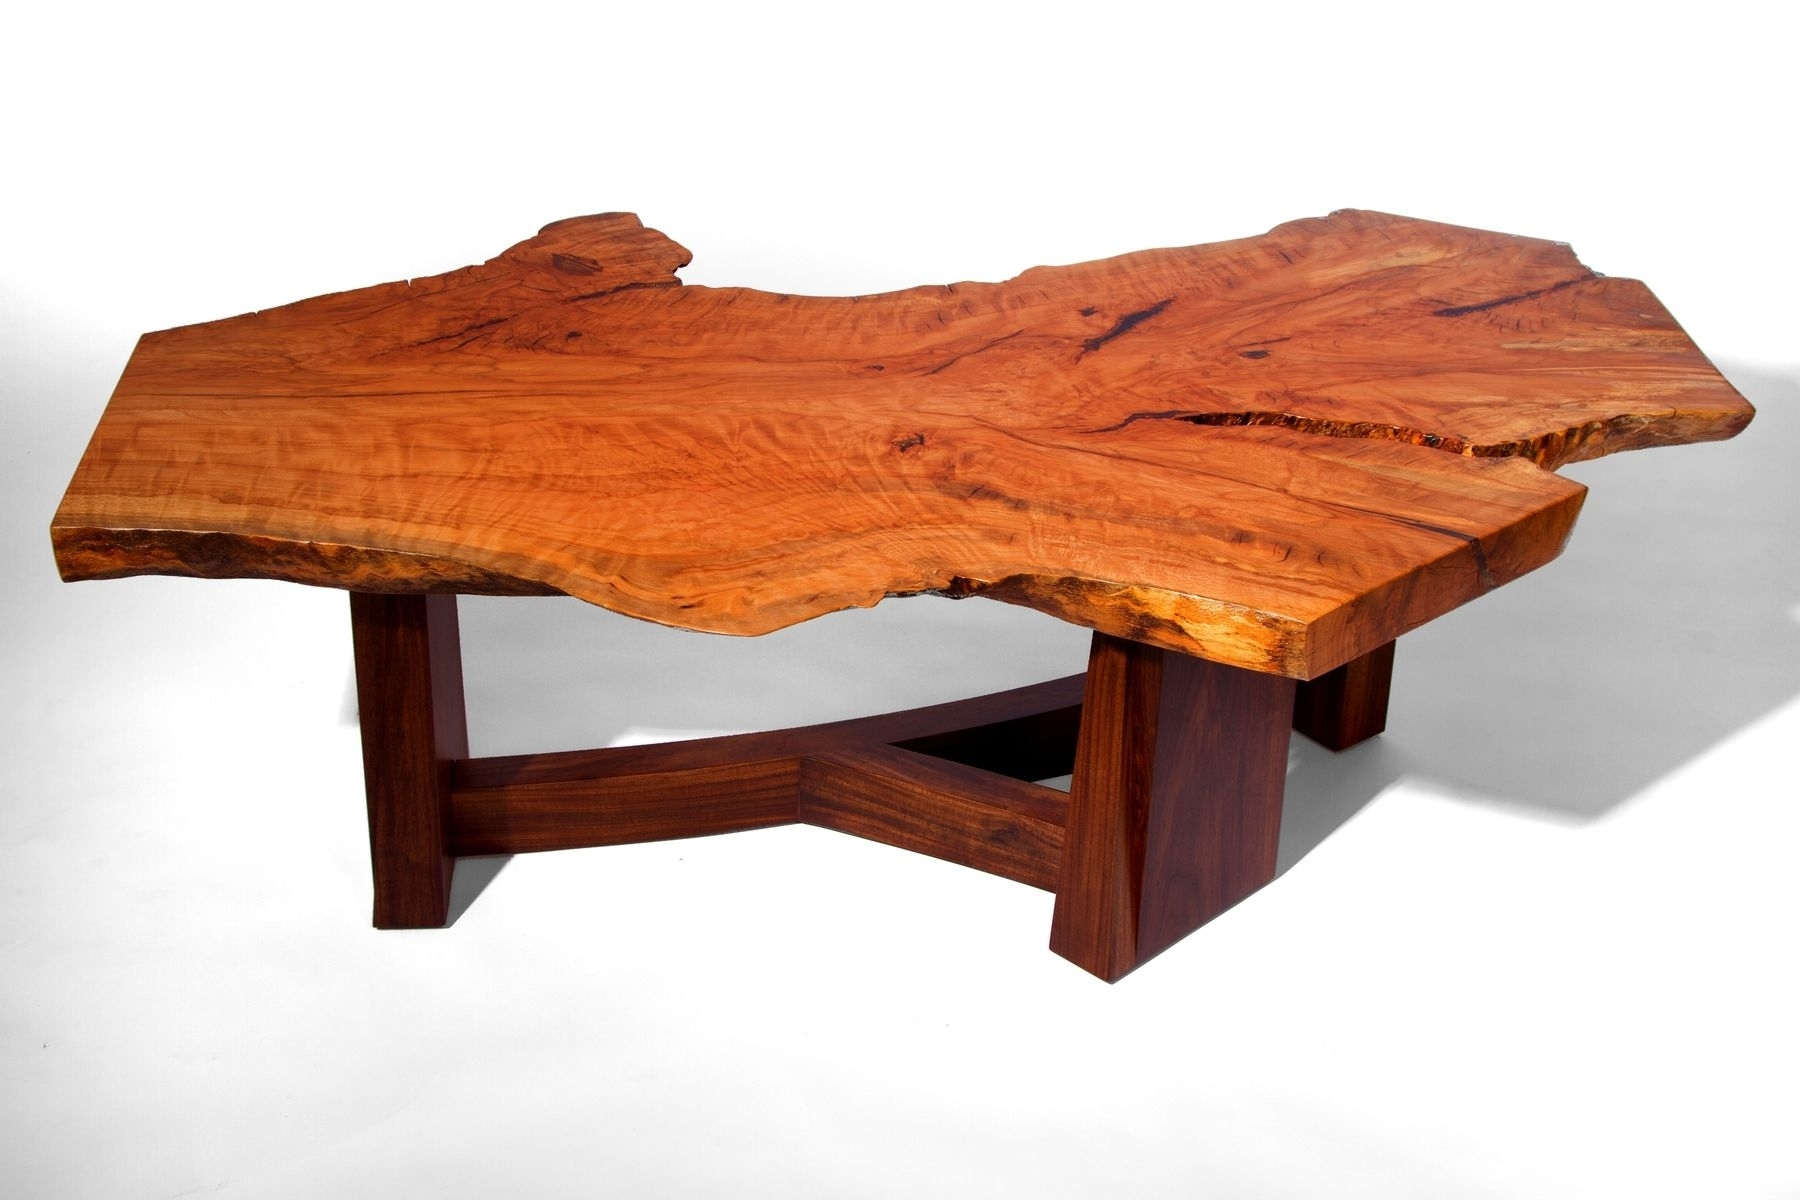 14 Live Edge Coffee Table For Sale Collections | Coffee Tables Ideas With Live Edge Teak Coffee Tables (Gallery 19 of 30)